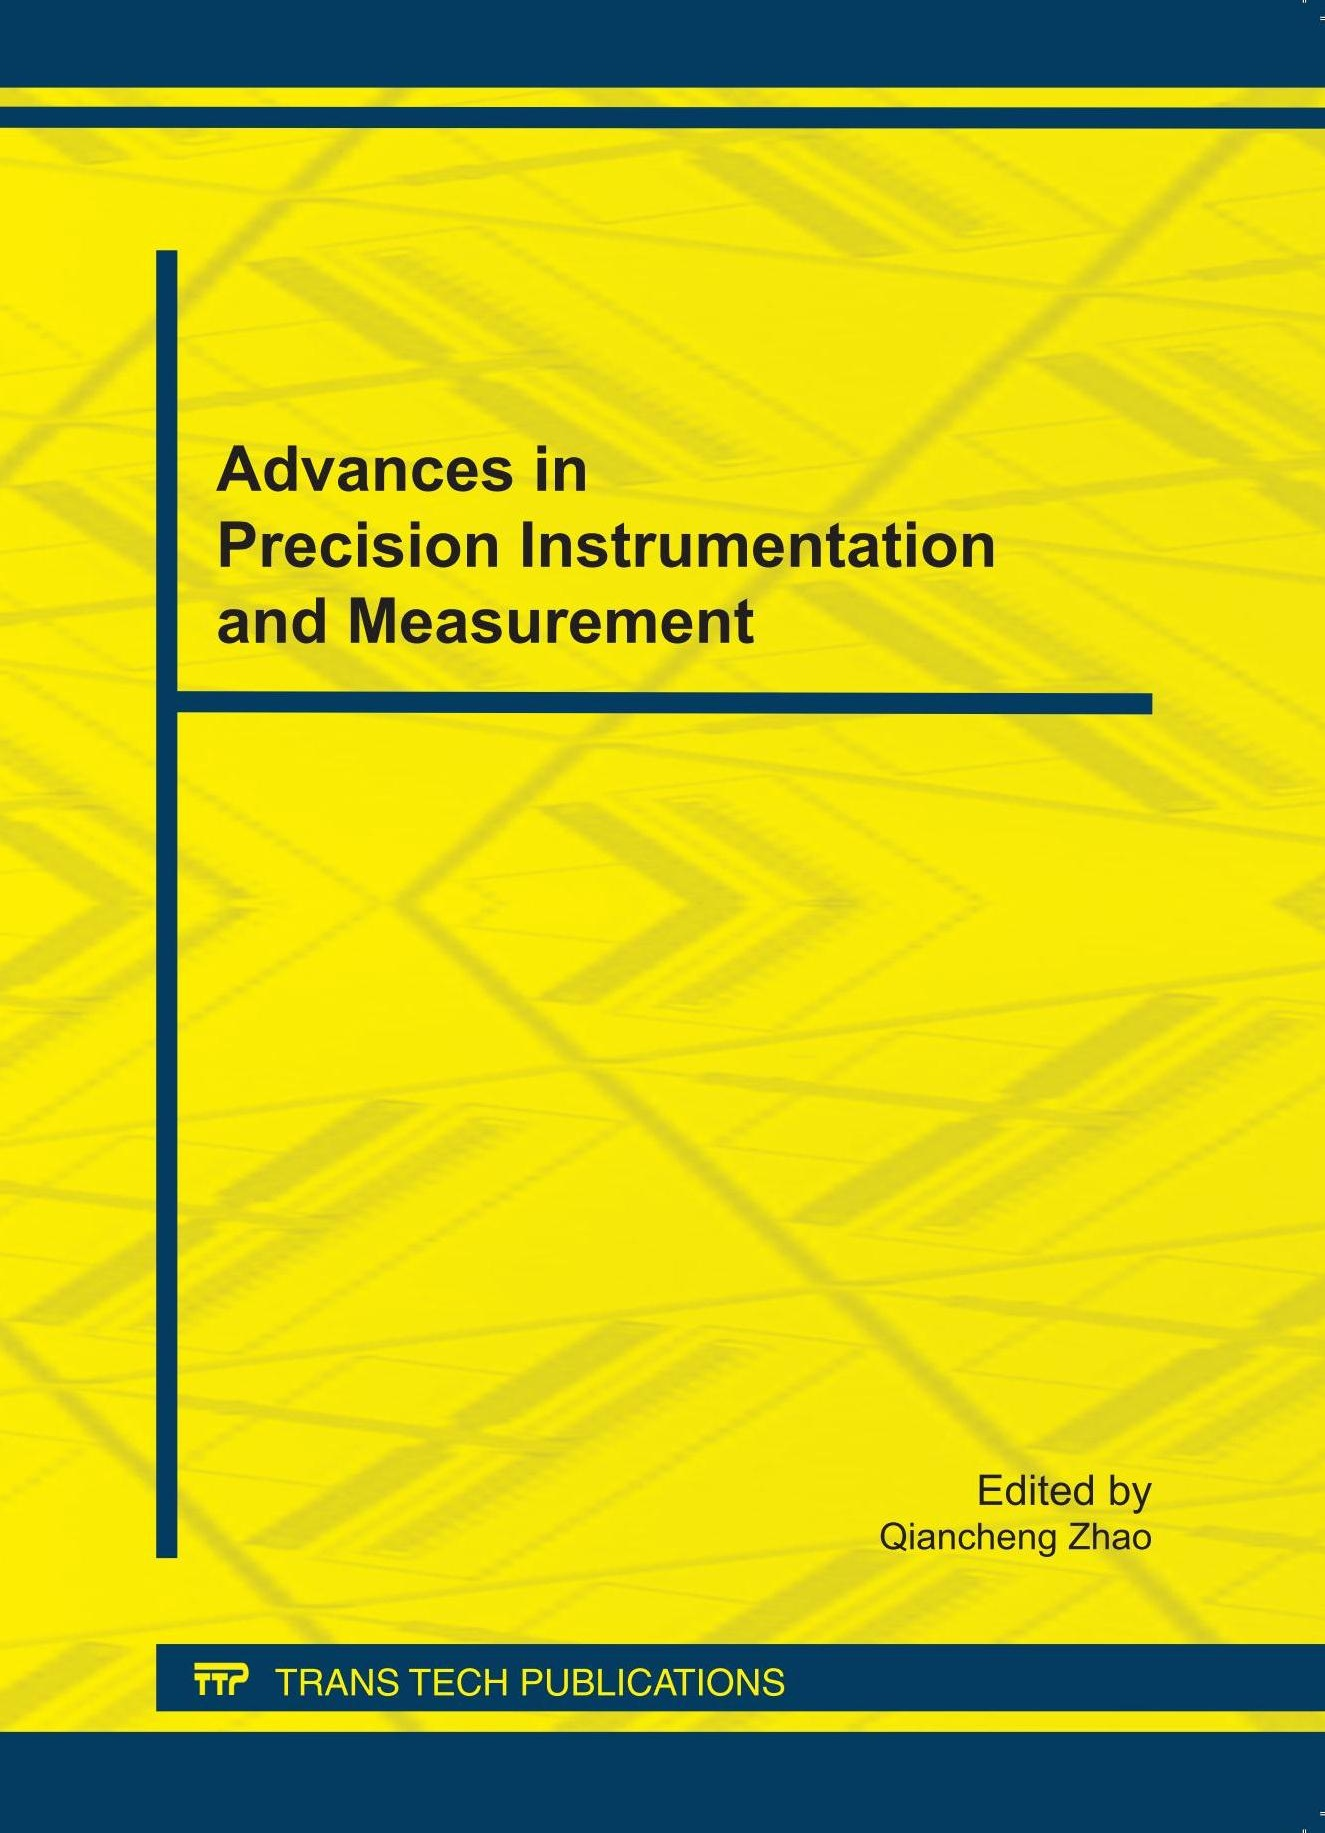 Advances in Precision Instrumentation and Measurement